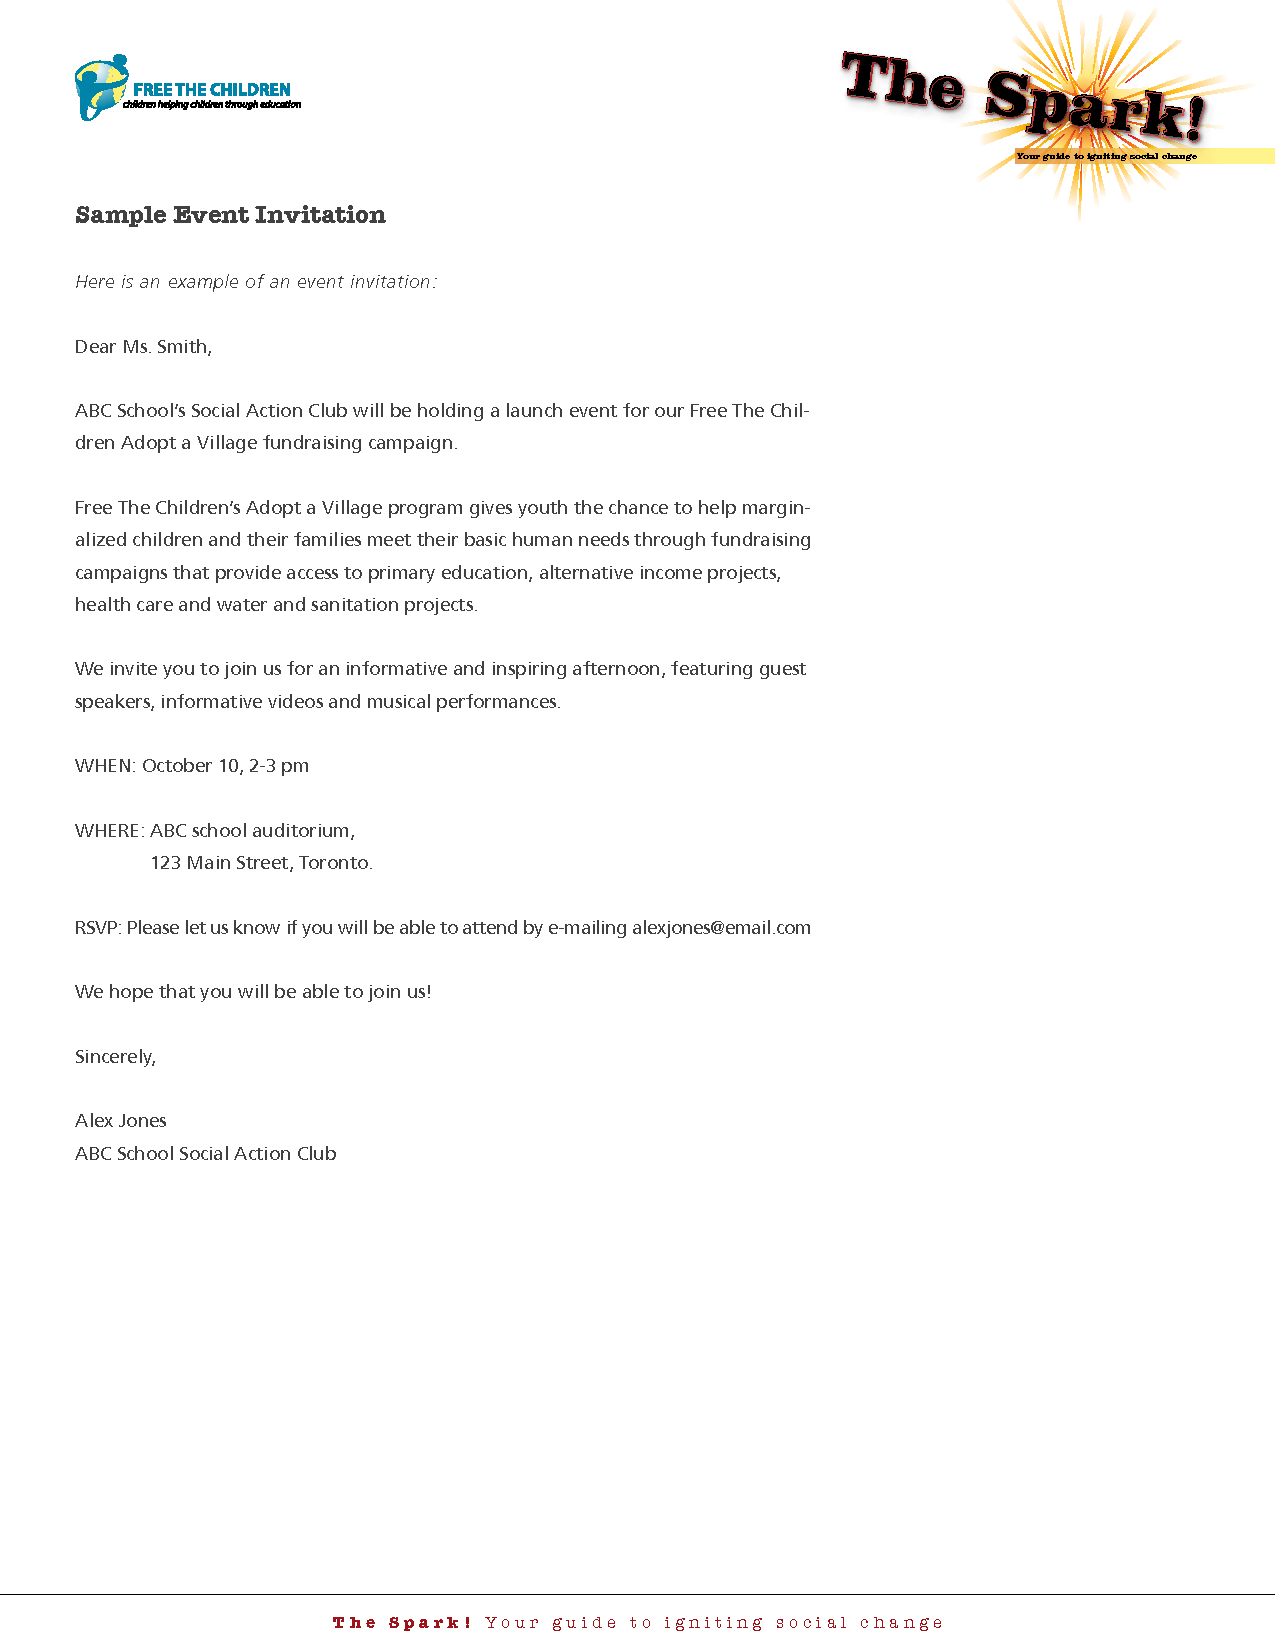 Invitation Event Sample Work Experience Certificate Template Business Templates Templateall About